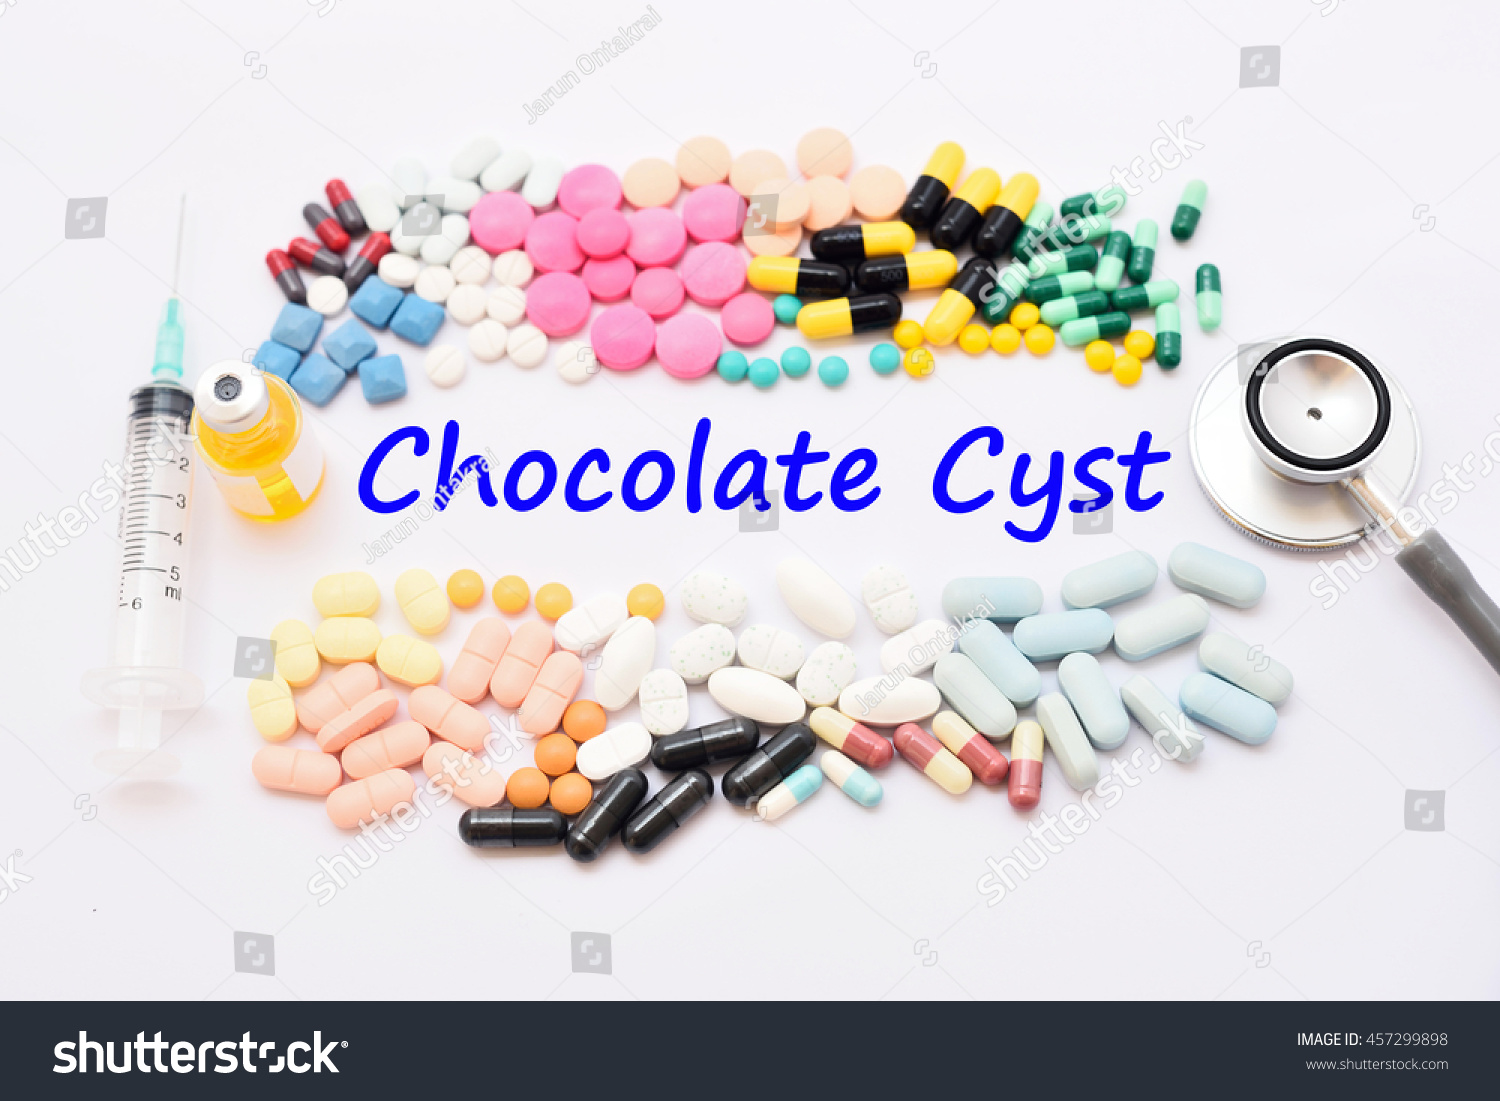 Drugs For Chocolate Cyst Treatment, Medical Concept Stock Photo ...